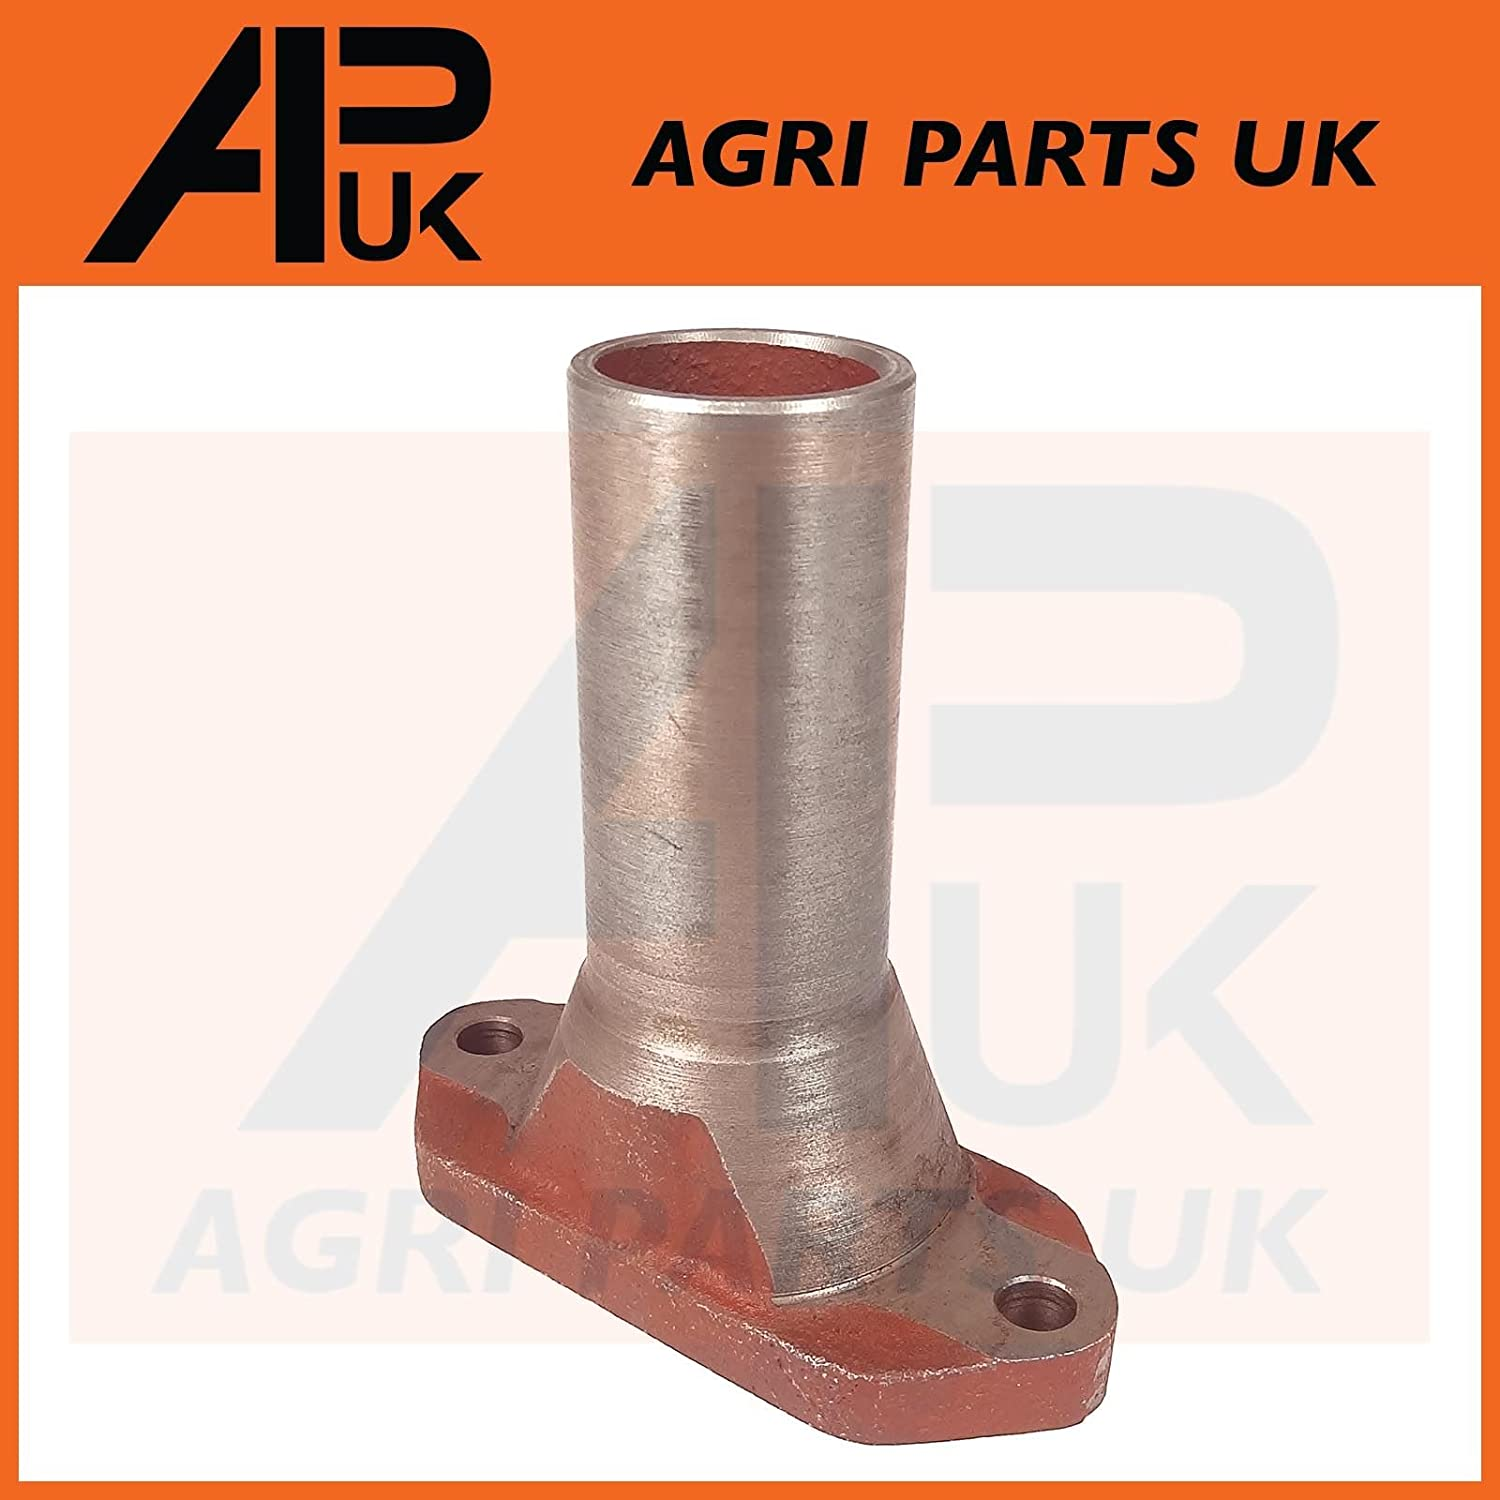 APUK Exhaust Manifold Elbow /& Gasket 41mm Compatible with David Brown 990 995 996 1200 1212 Tractor